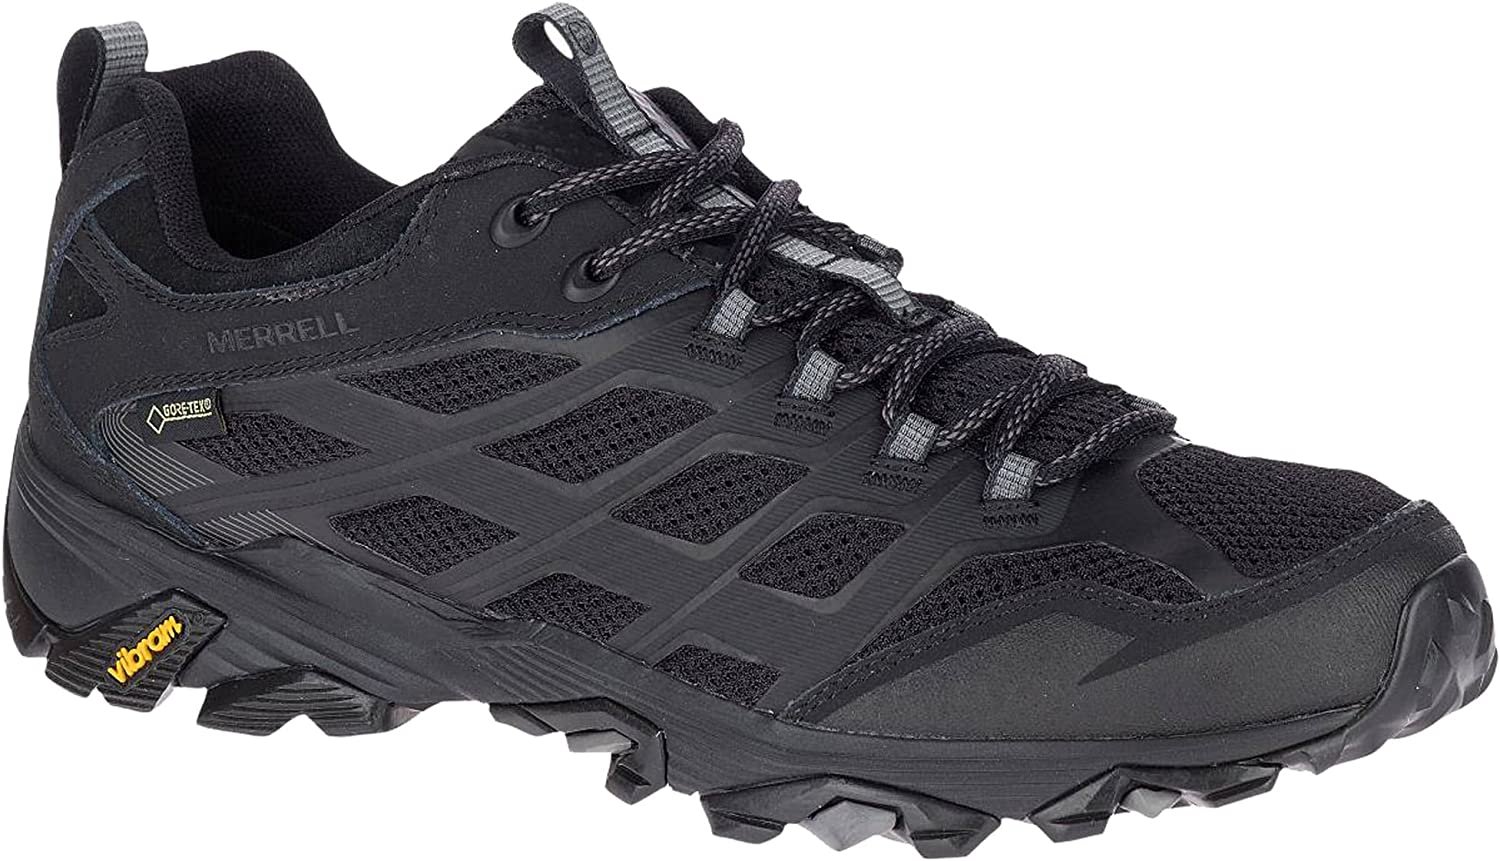 Merrell Moab FST Gore-Tex Walking shoes